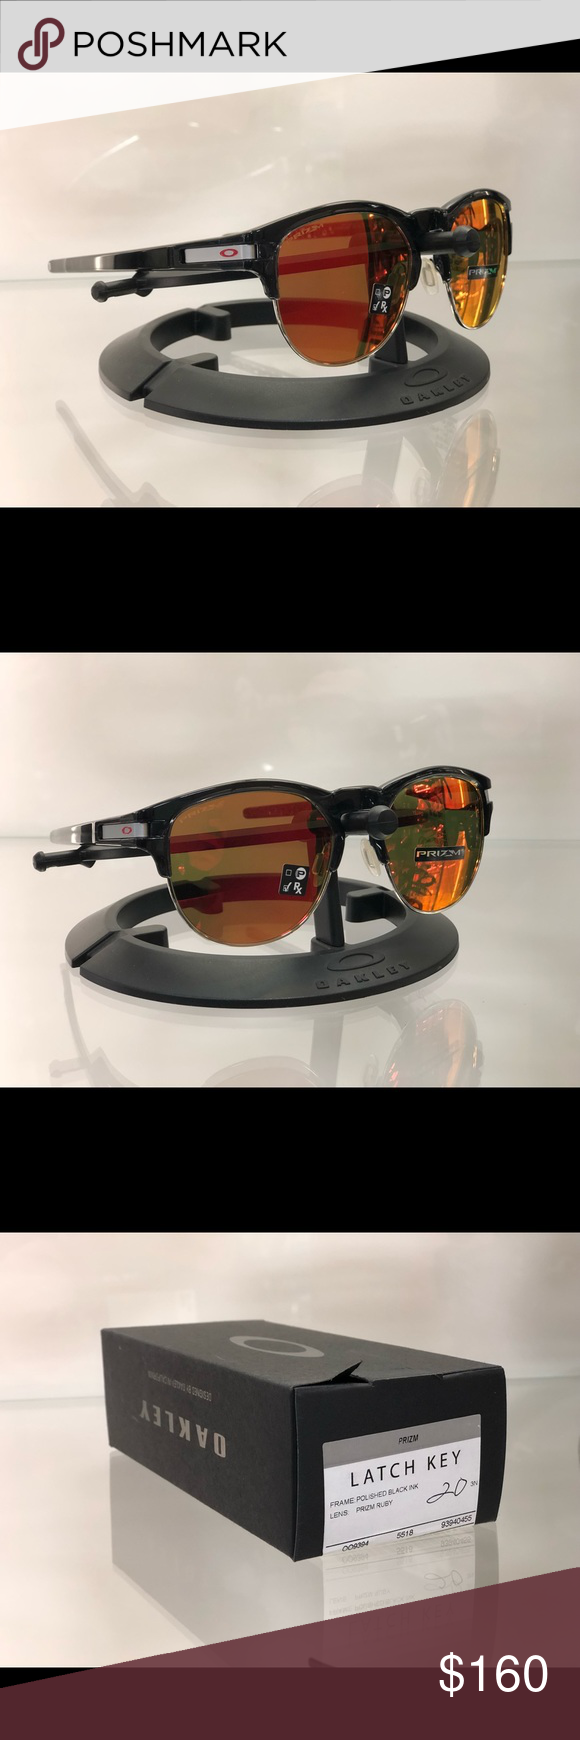 1bce47dcc8ce0 ... best price oakley latch key new in box black ink and prizm ruby. oakley  accessories